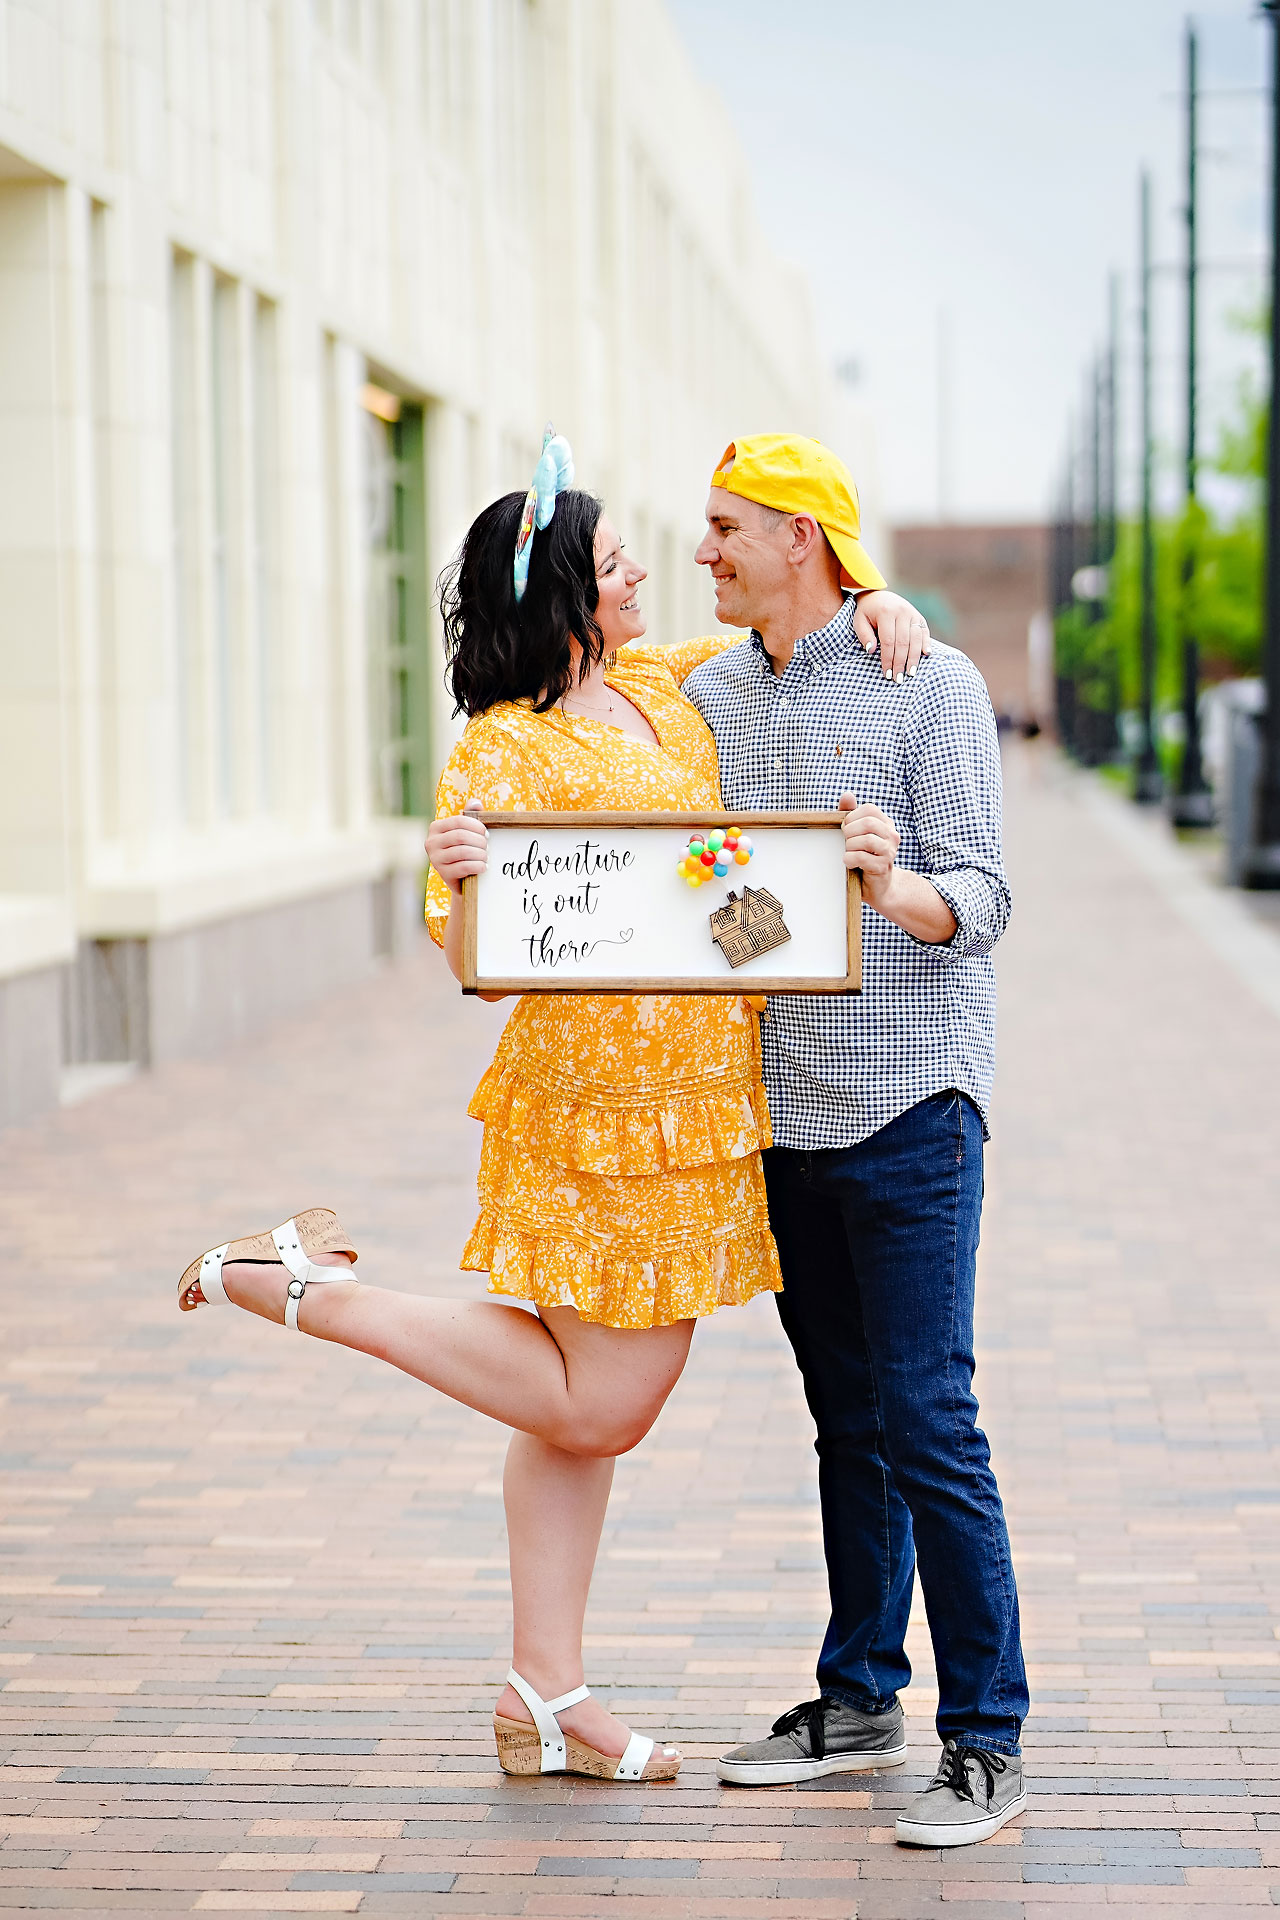 Katie Chuck Bottleworks Canal Indianapolis Engagement Session 042